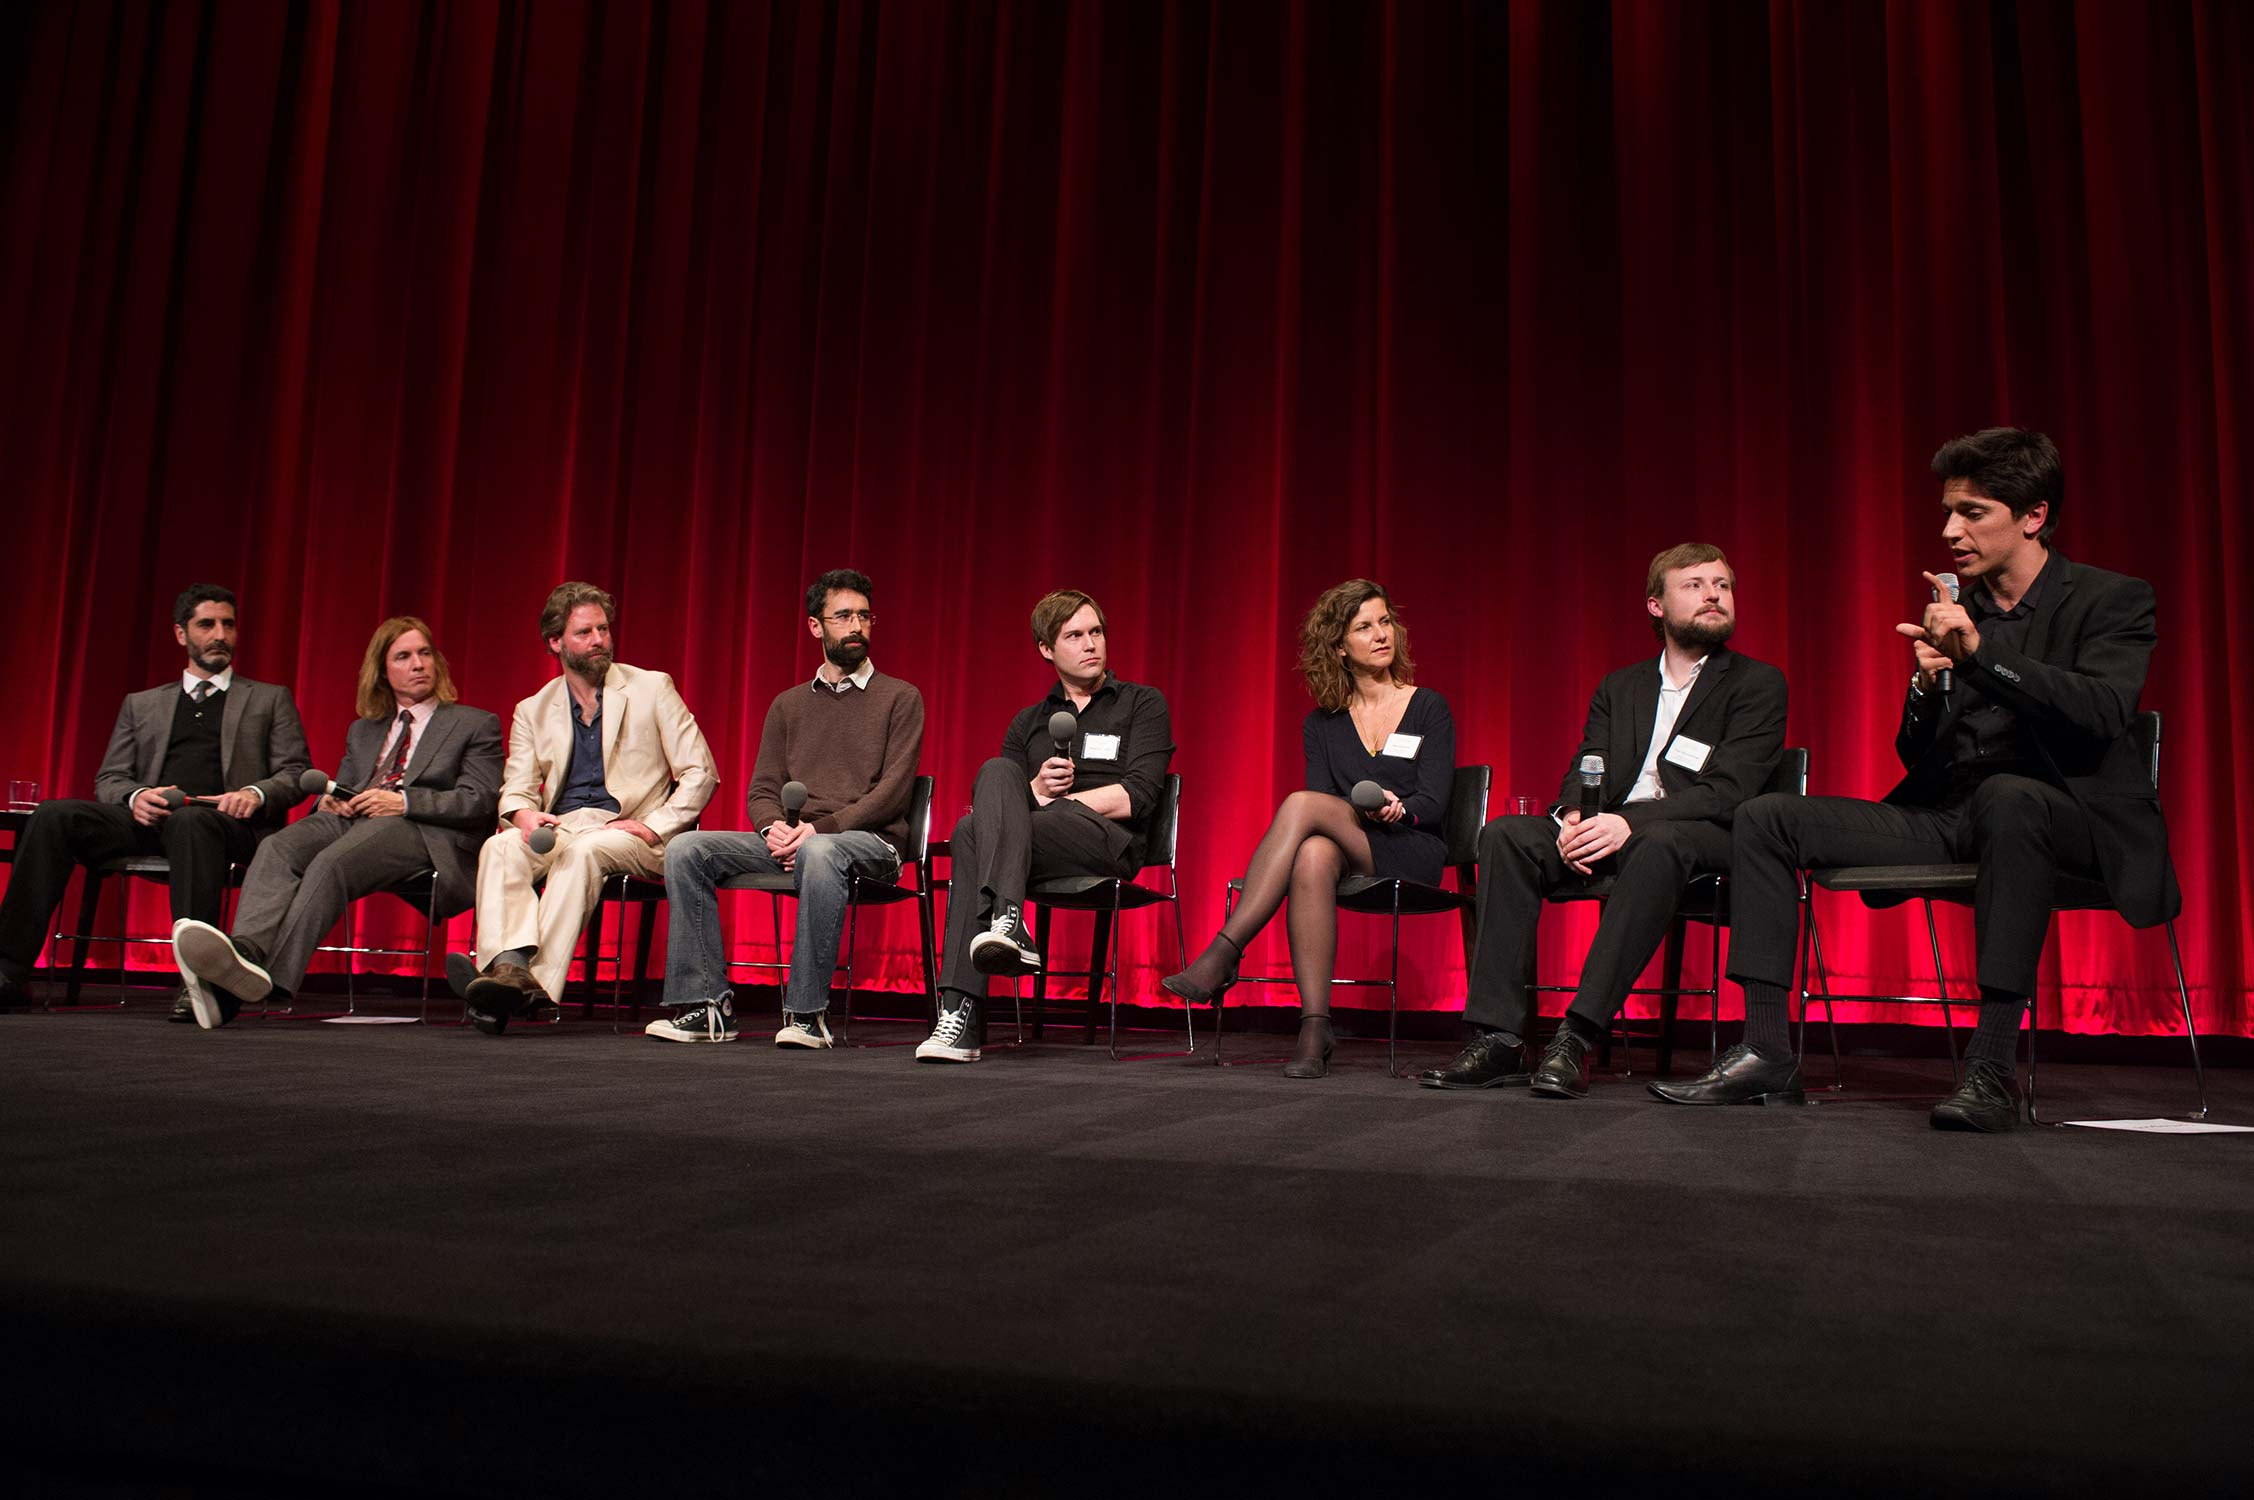 The panelists with host Jason Schwartzman.